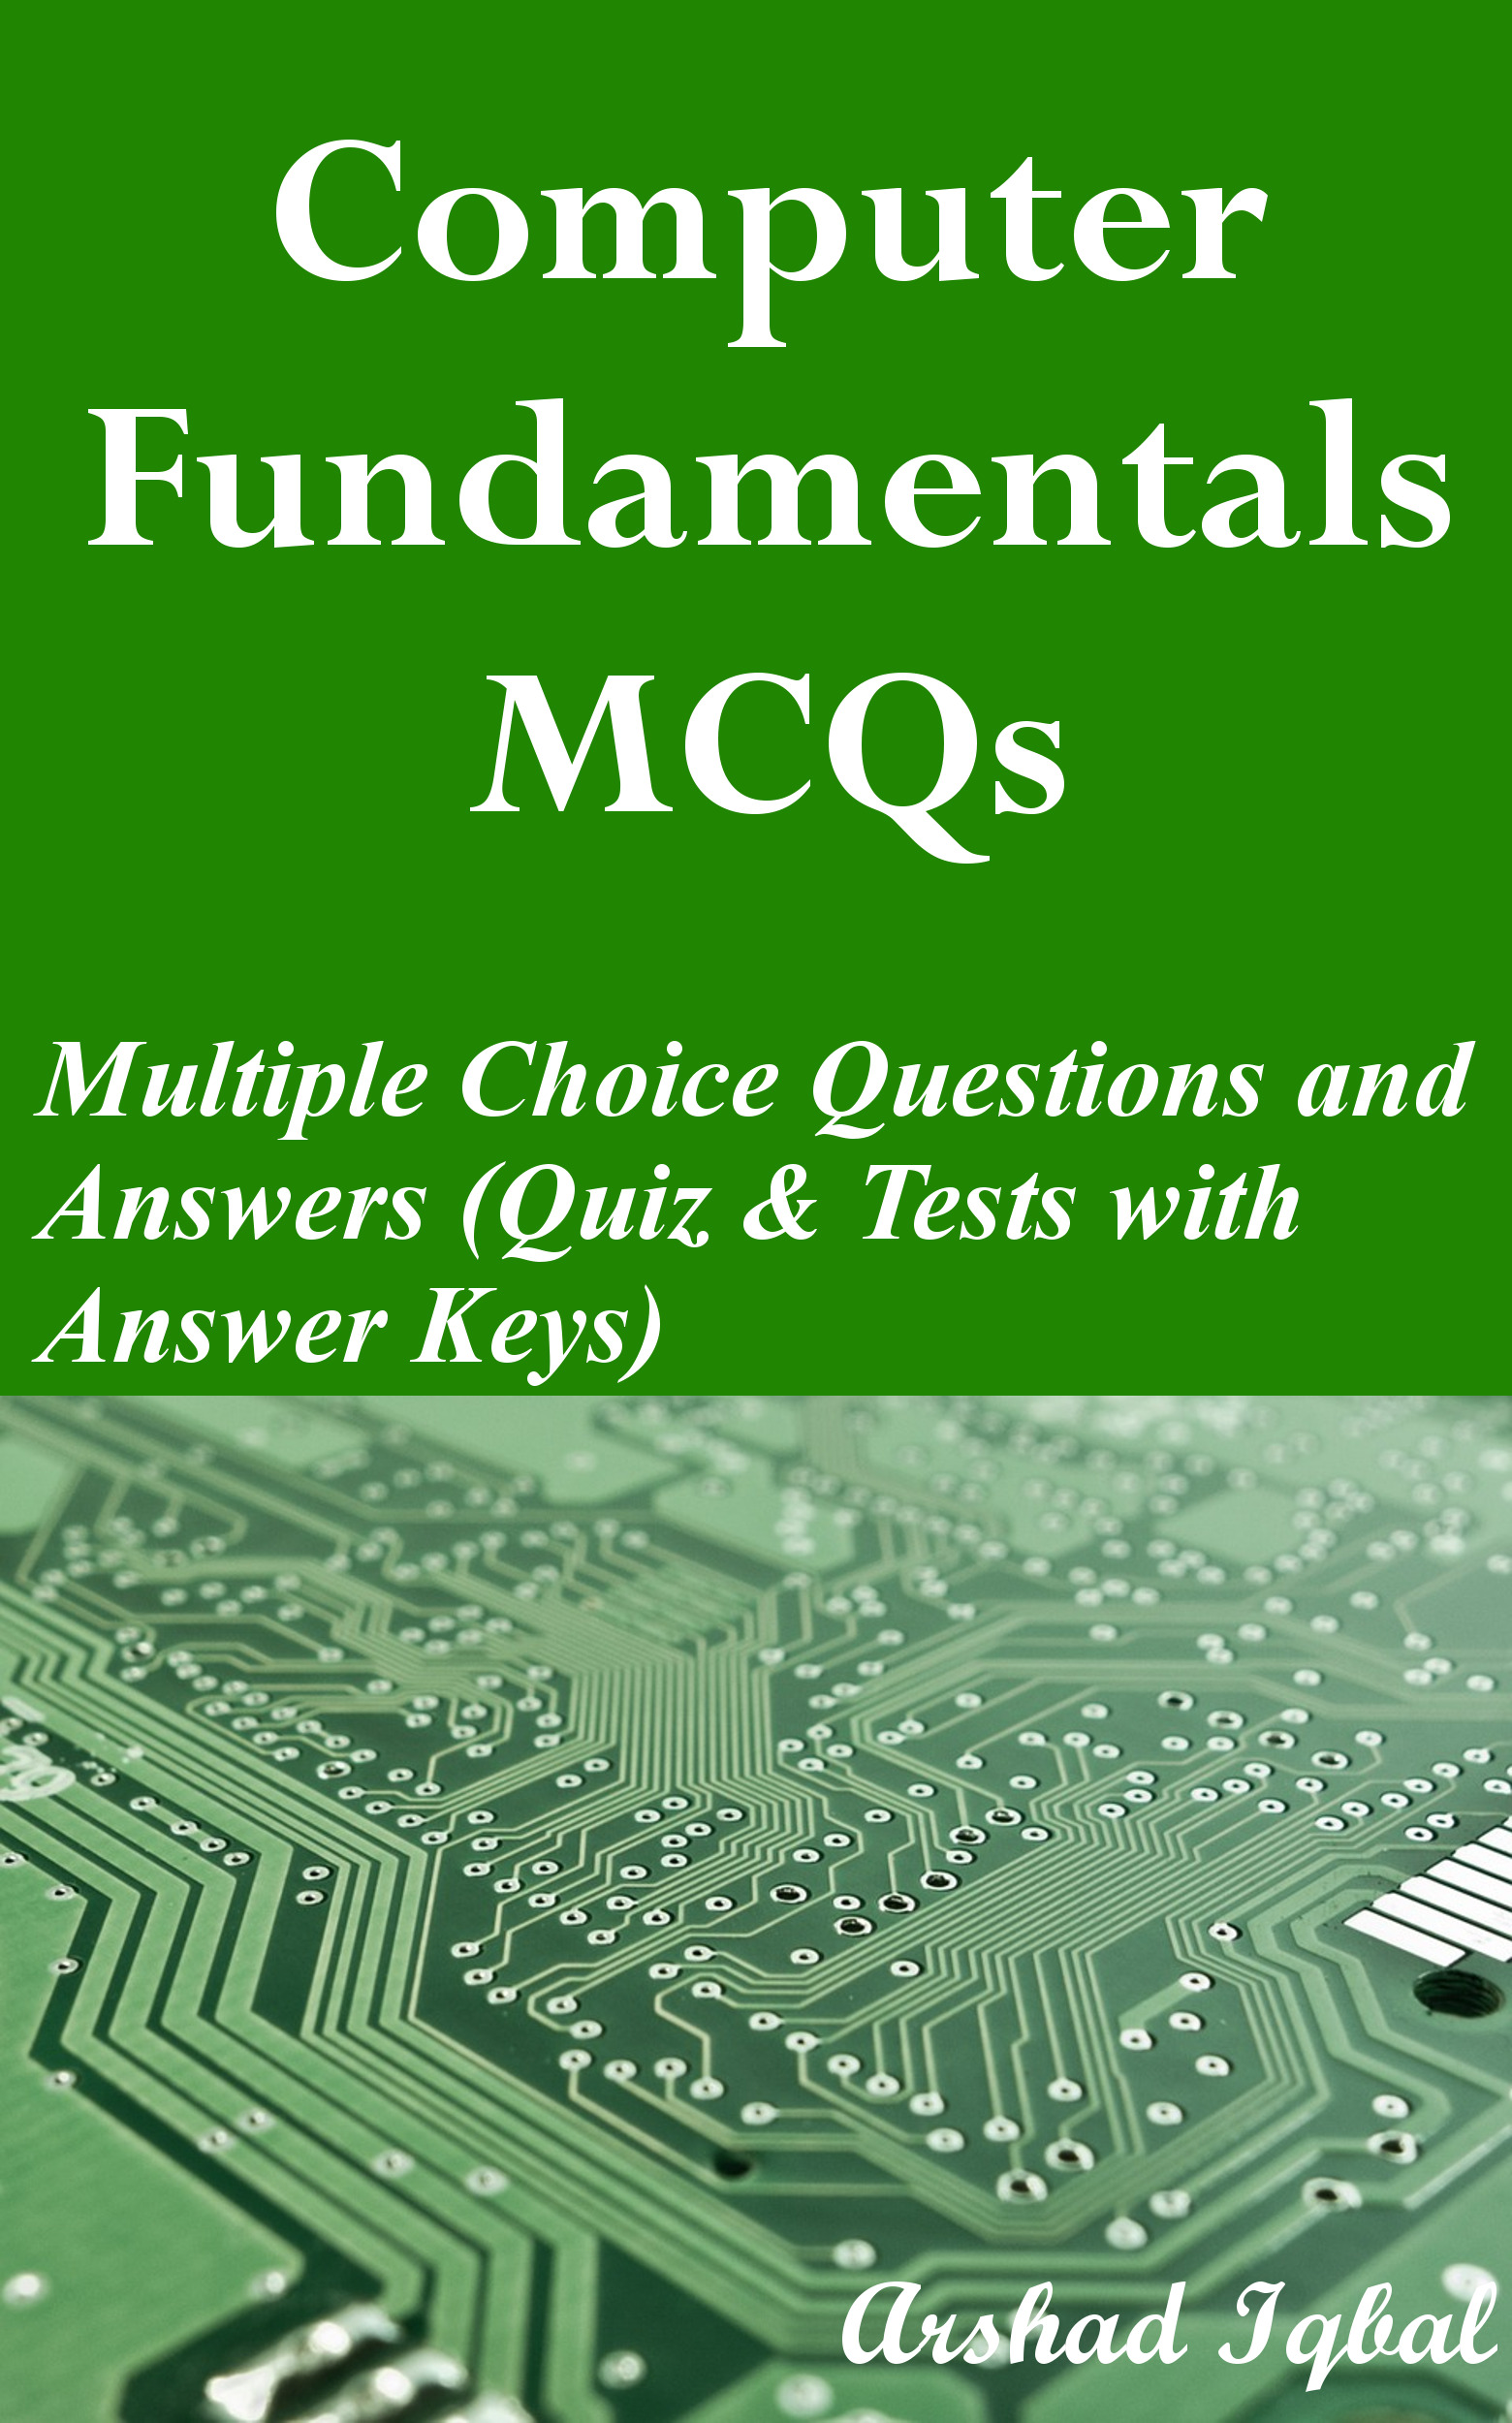 Computer Fundamentals Multiple Choice Questions and Answers (MCQs): Quizzes & Practice Tests with Answer Key